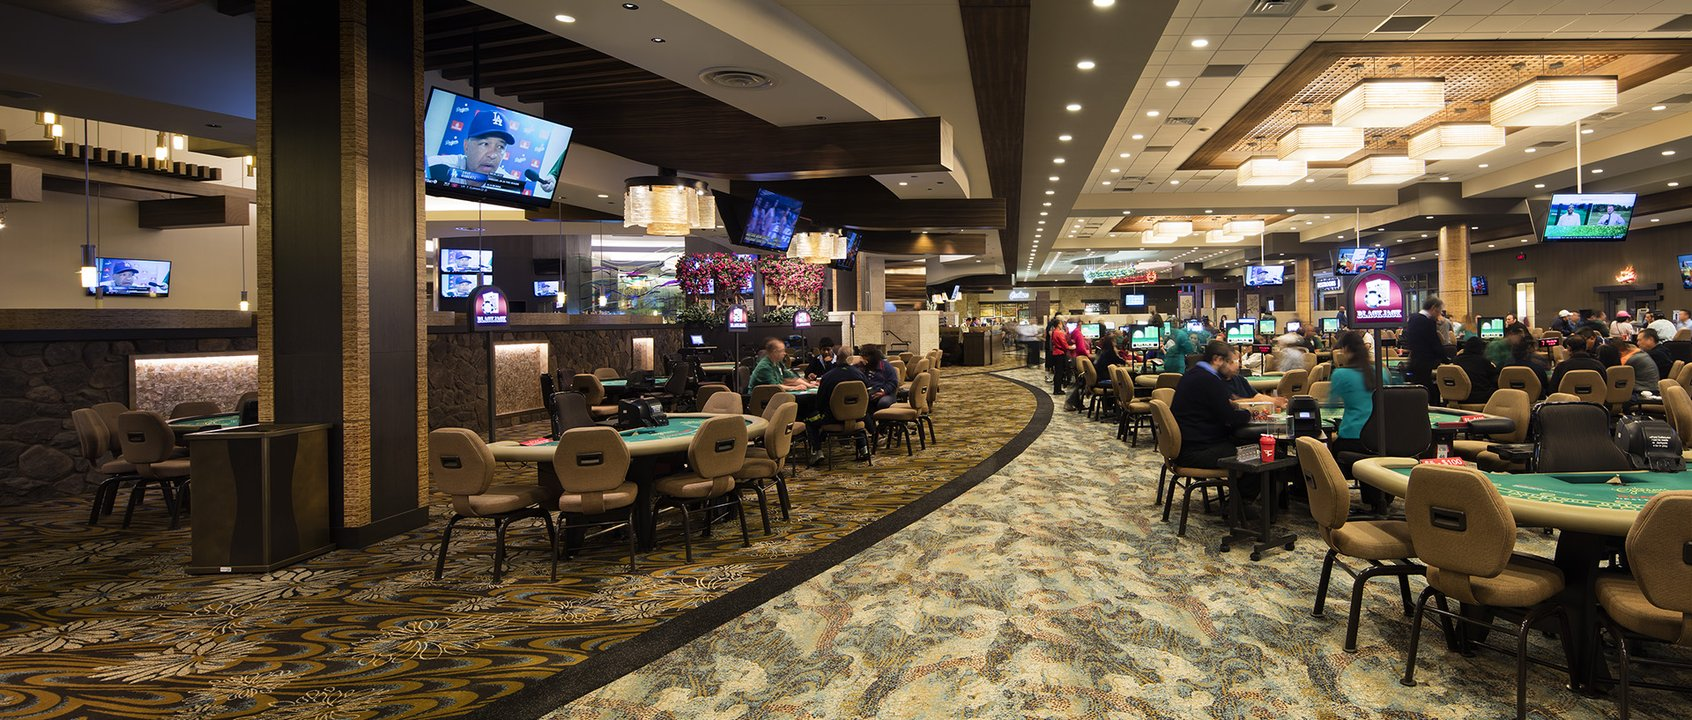 Hawaiian Gardens Casino | JCJ Architecture